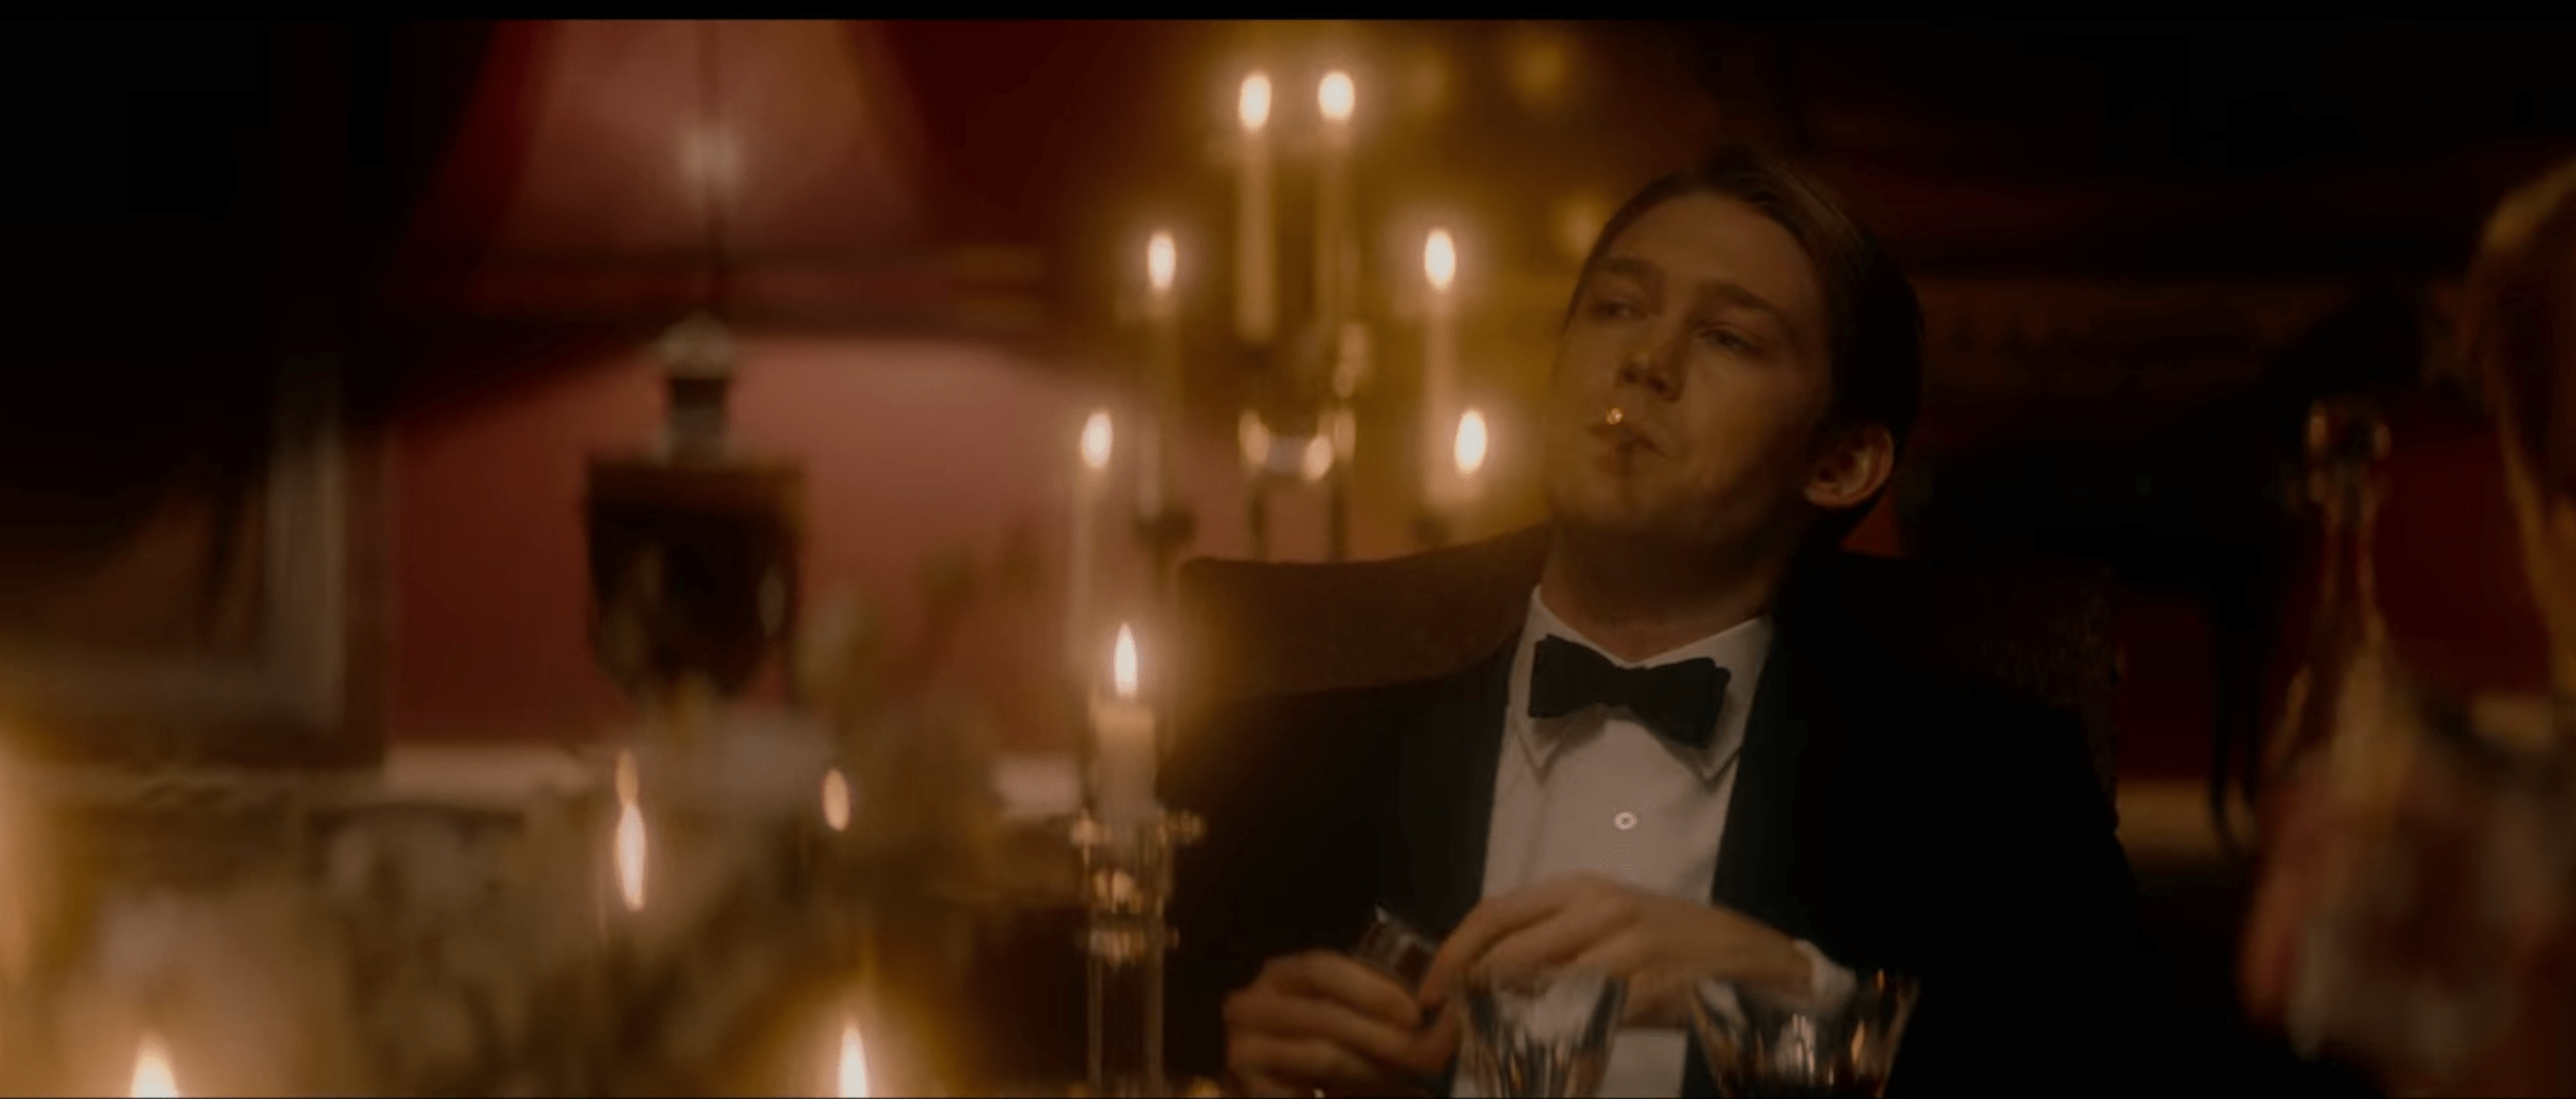 Lawrence in formal dinner attire with a cigarette in his mouth. There are lit candles glowing behind him and in front of him. His facial expression is smug.